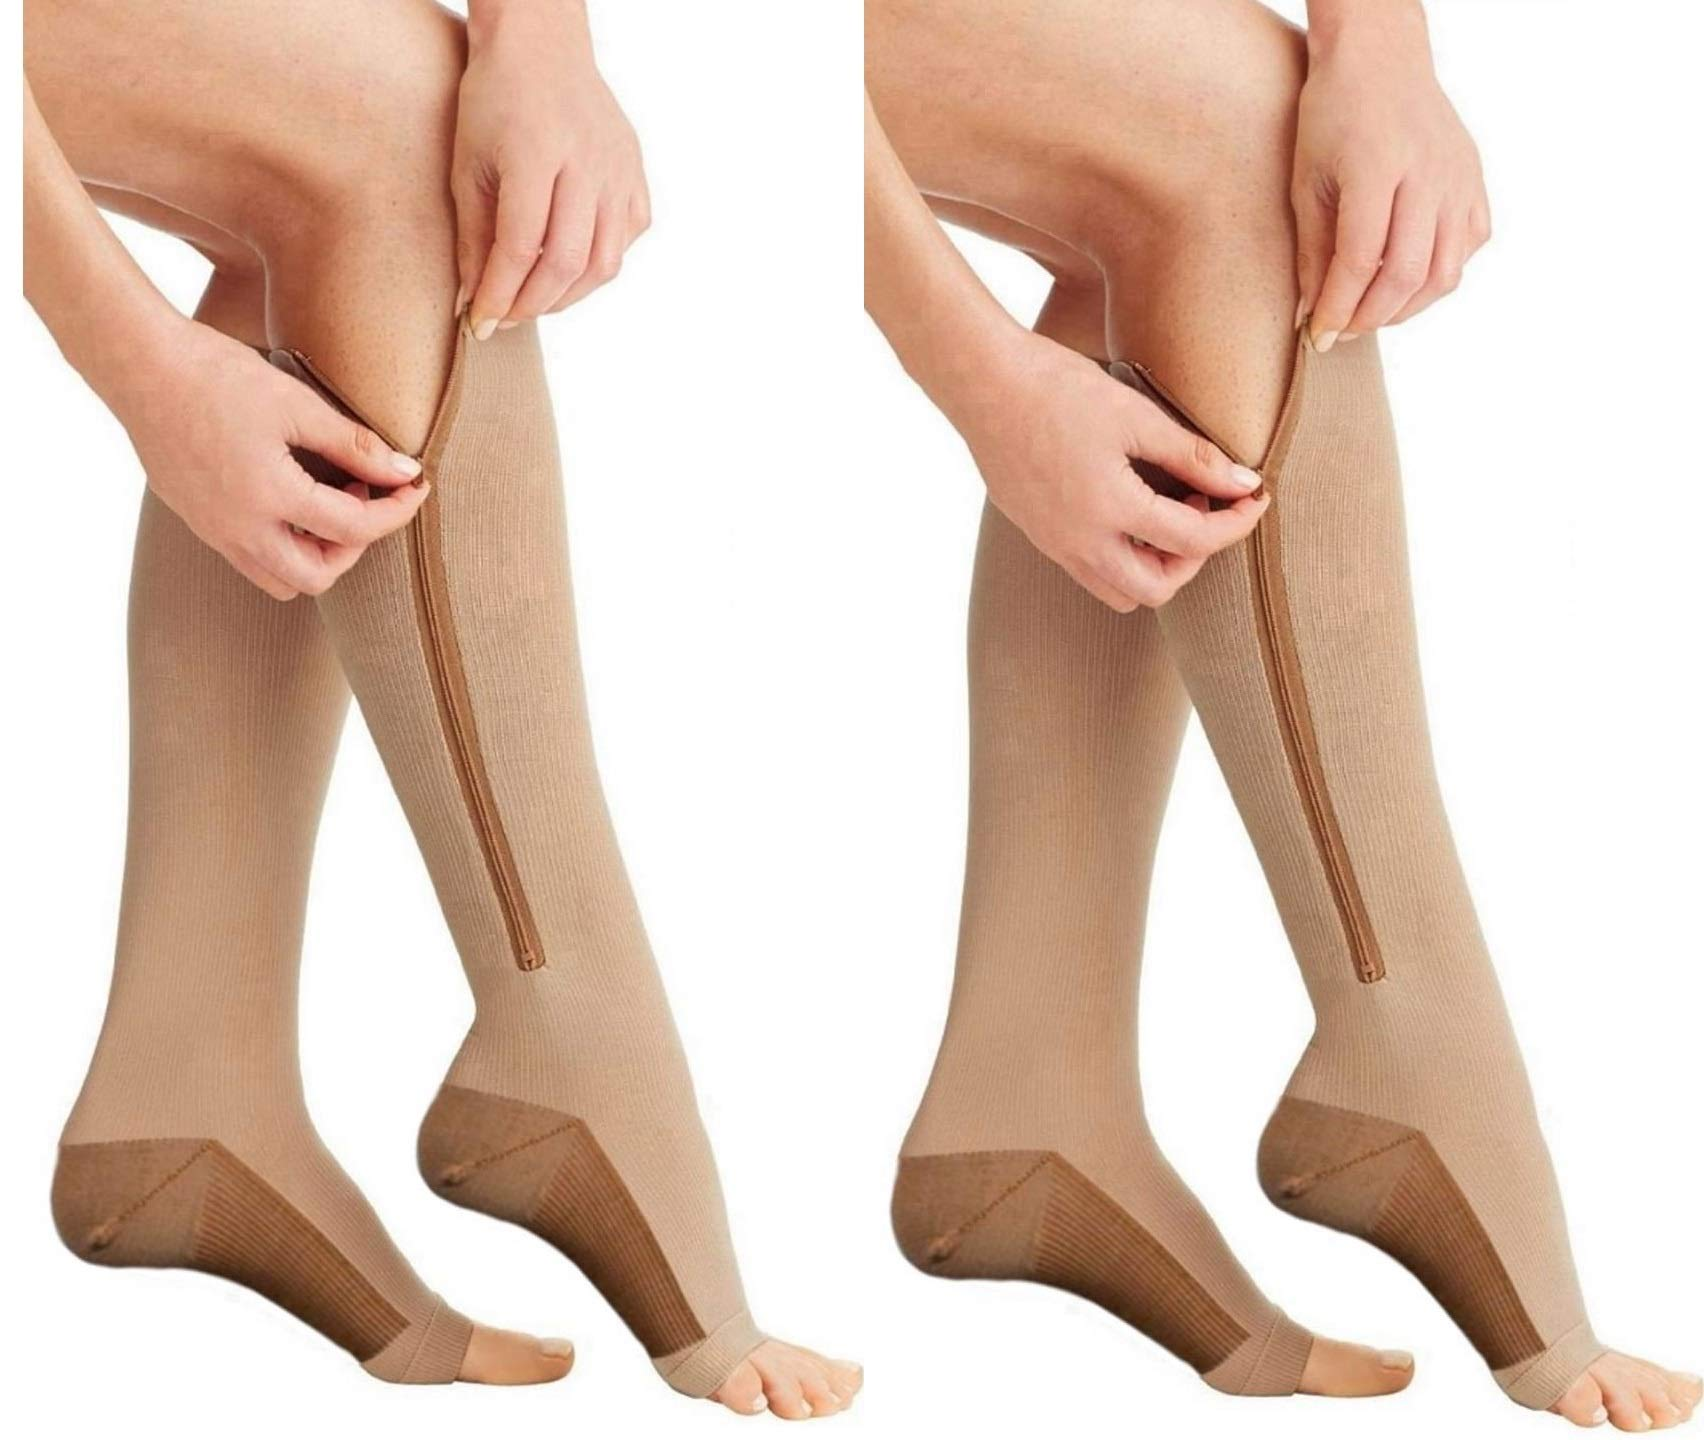 (ZipBeige/Cu, XXL, 2Pr) Zipper Compression Socks - Premium Design for Men and Women Everyday Use Running Pregnancy Flight & Travel Nursing Best Athletic Fit - Boost Stamina Circulation & Recovery by DevsWear (Image #1)